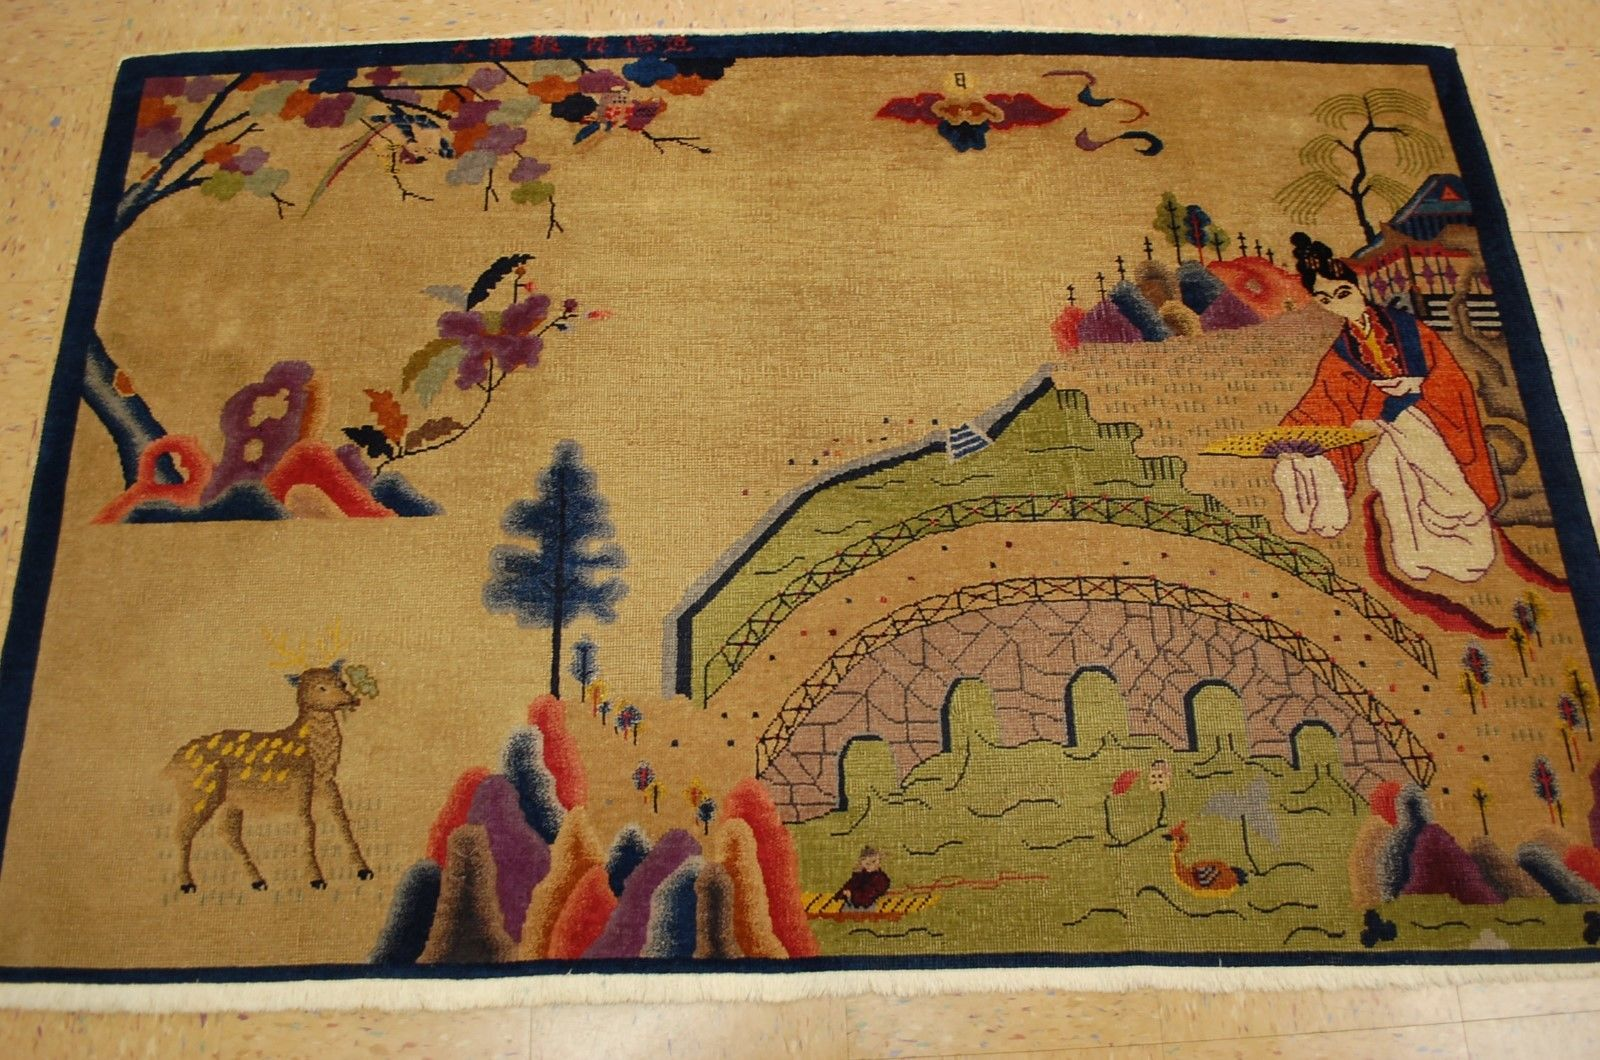 3'10 x 5'10 Hand-knotted Circa 1910's Antique Wool Chinese Art Deco Nichols GEISHA DESIGN Signed Rug Tapestry Wall Hanging 12980562 (11)